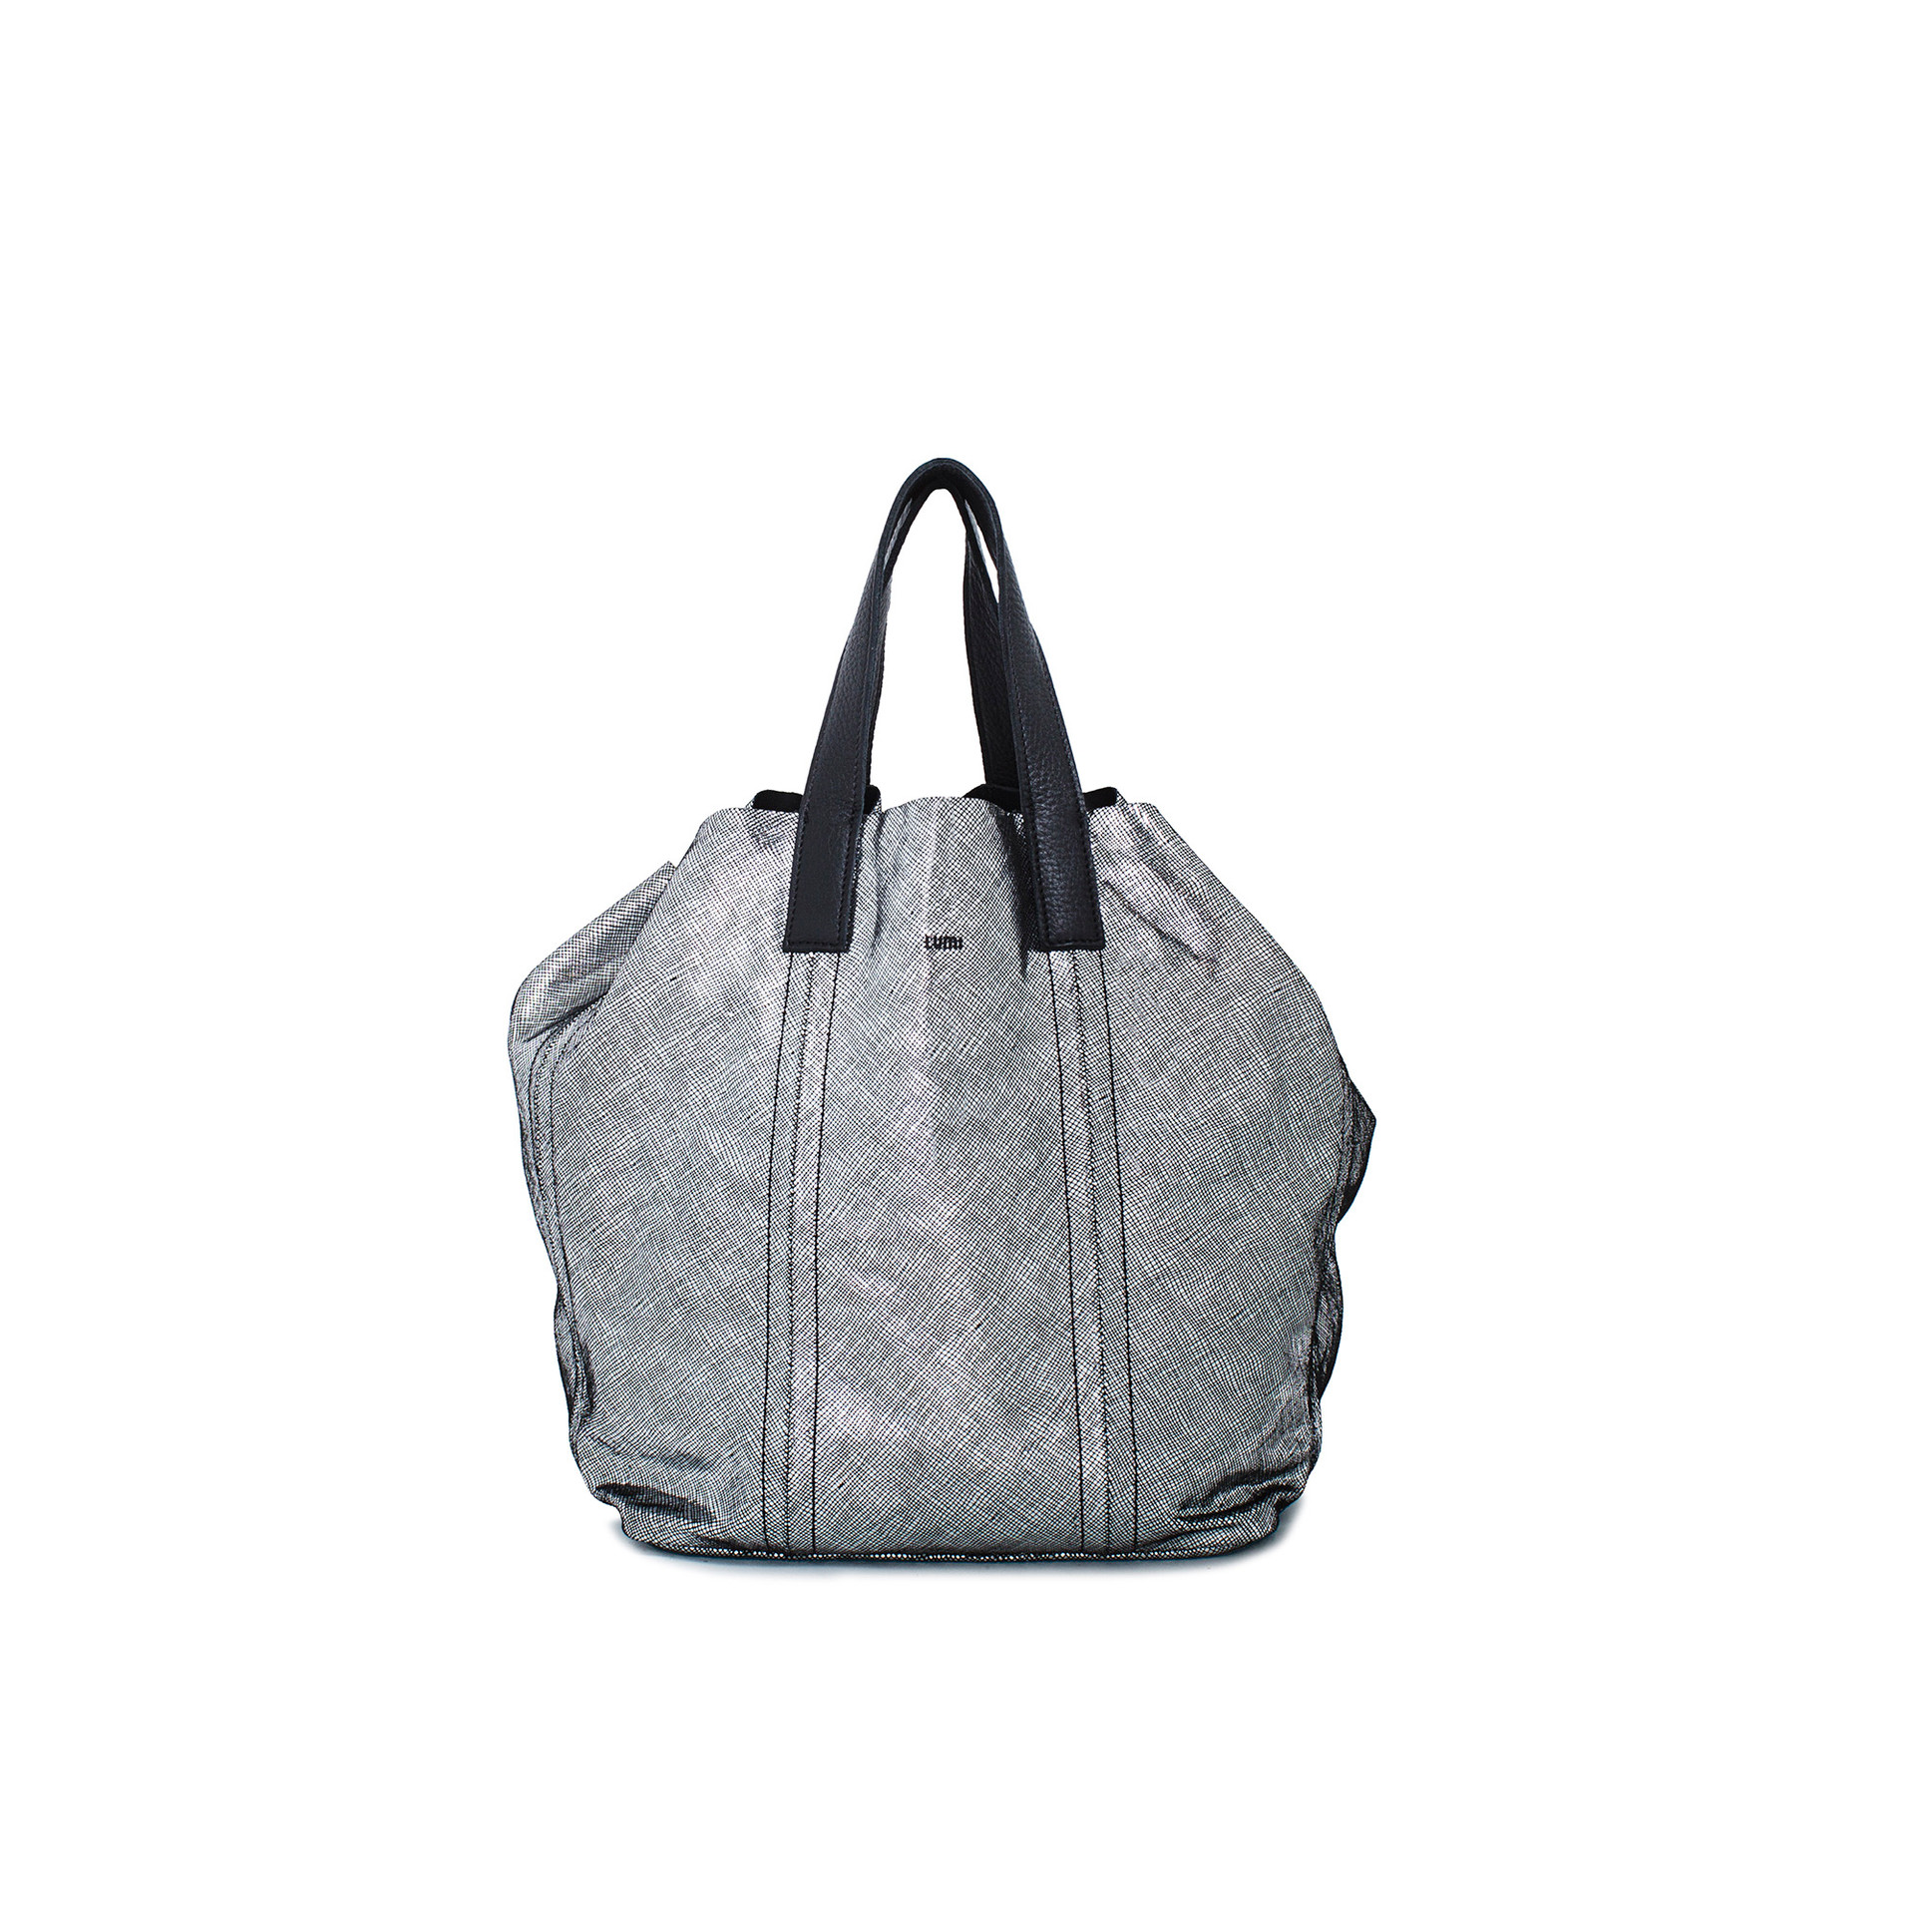 Large tote bag, in soft shiny metallic texturized leather.